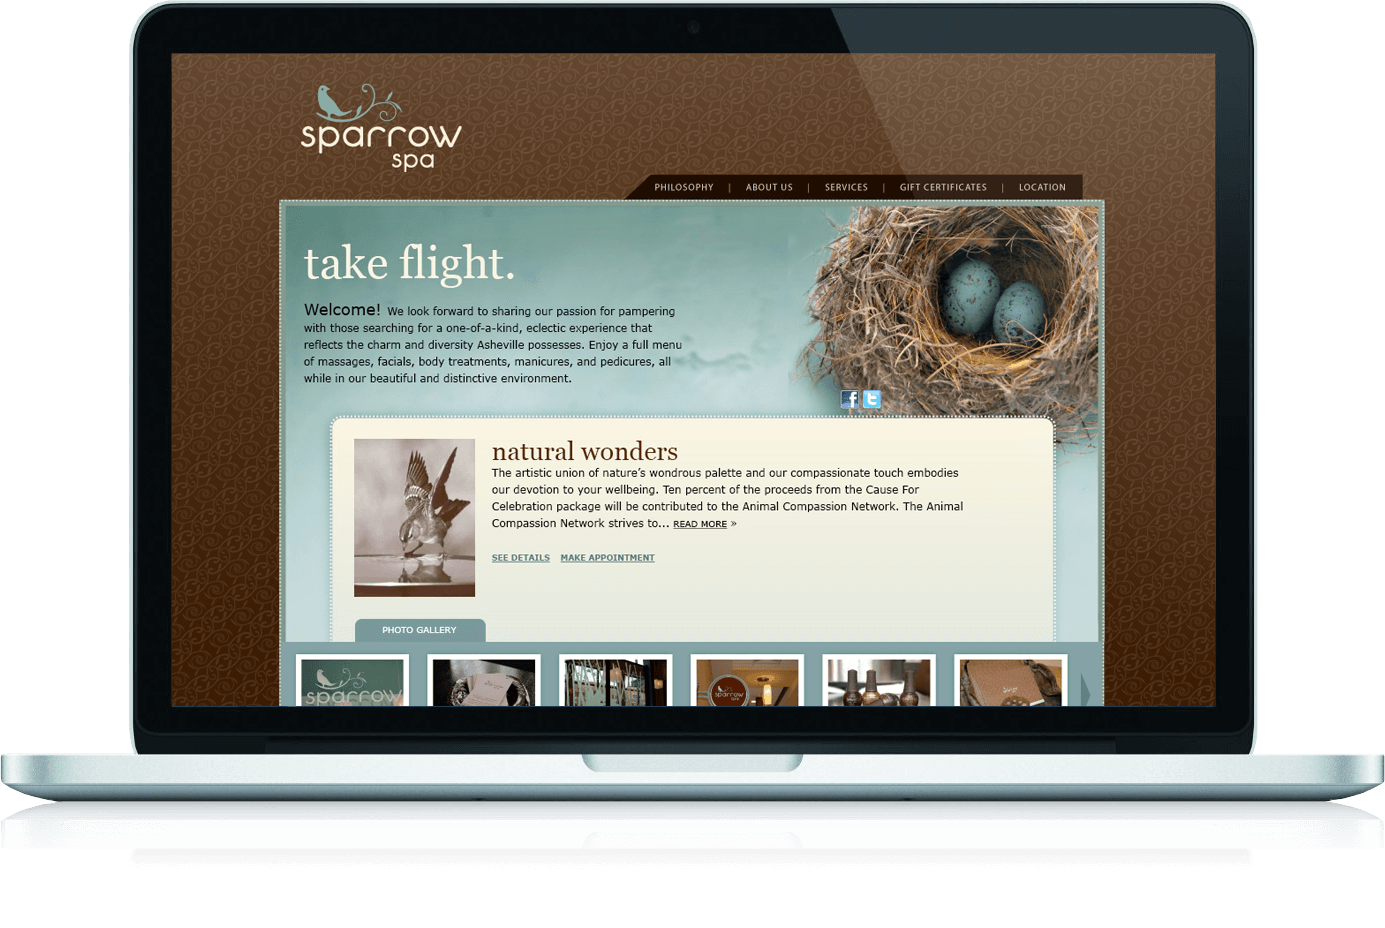 Sparrow Spa website homepage features a nest with sparrow eggs.